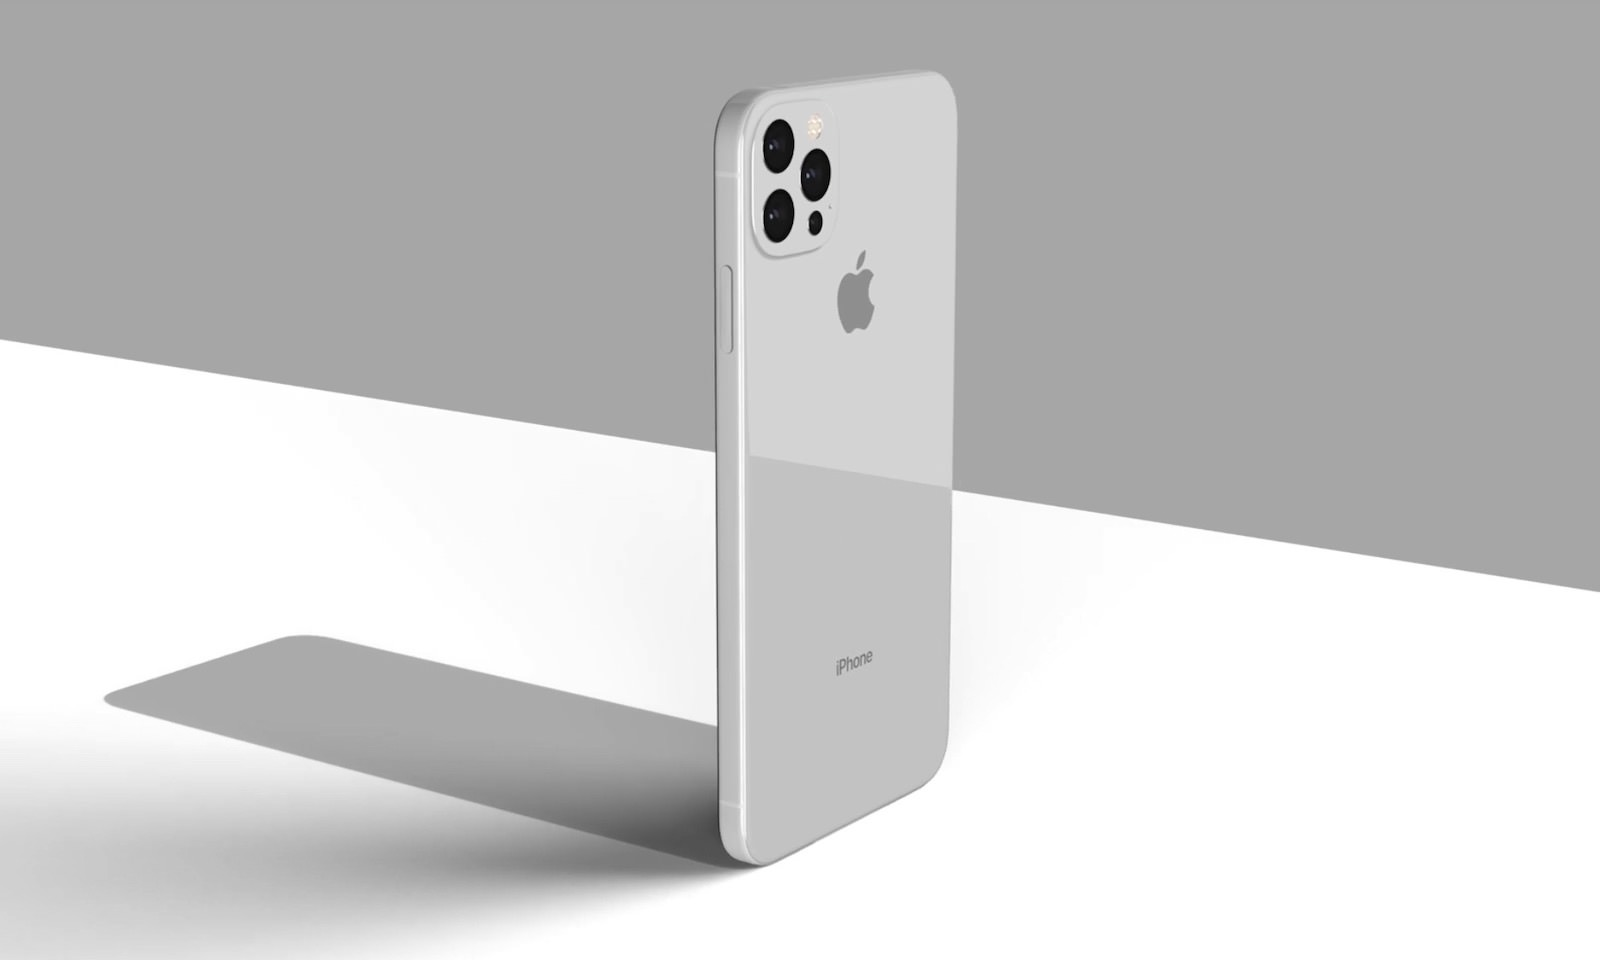 Iphone 11 concept image